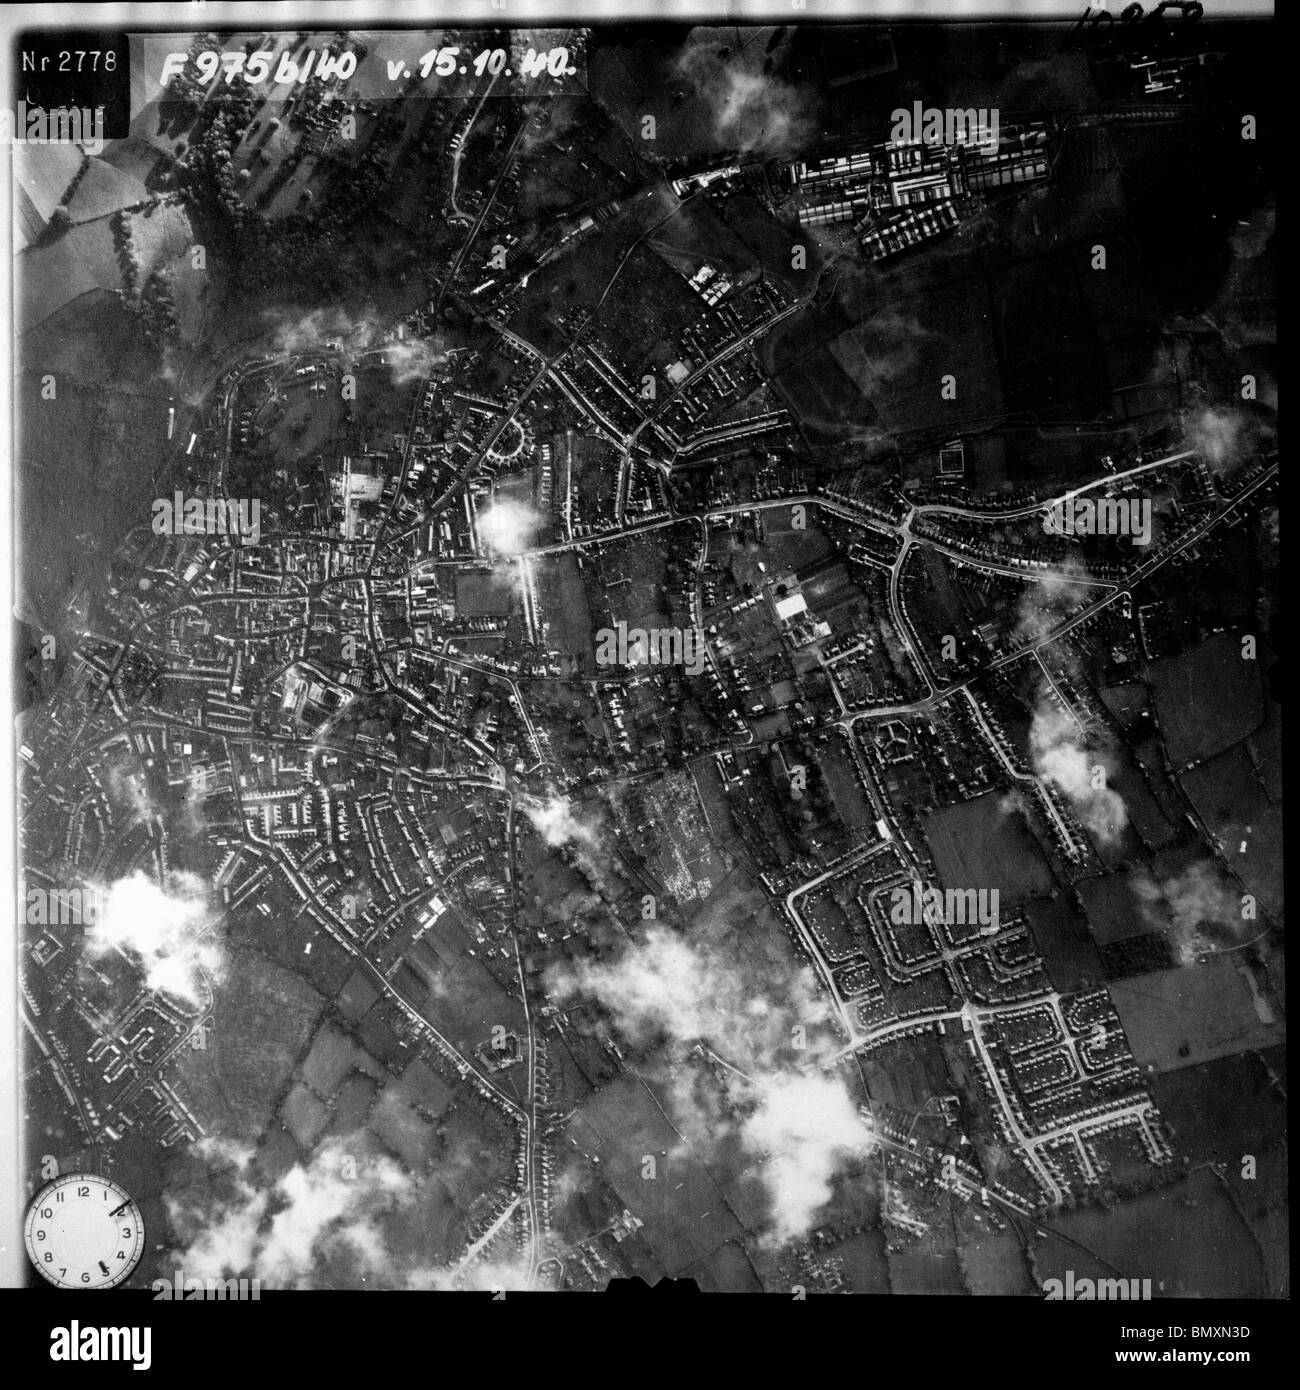 Yeovil - Somerset 15thOctober 1940 Westland Aircraft Works, Airfield & Barrage Balloons - Stock Image